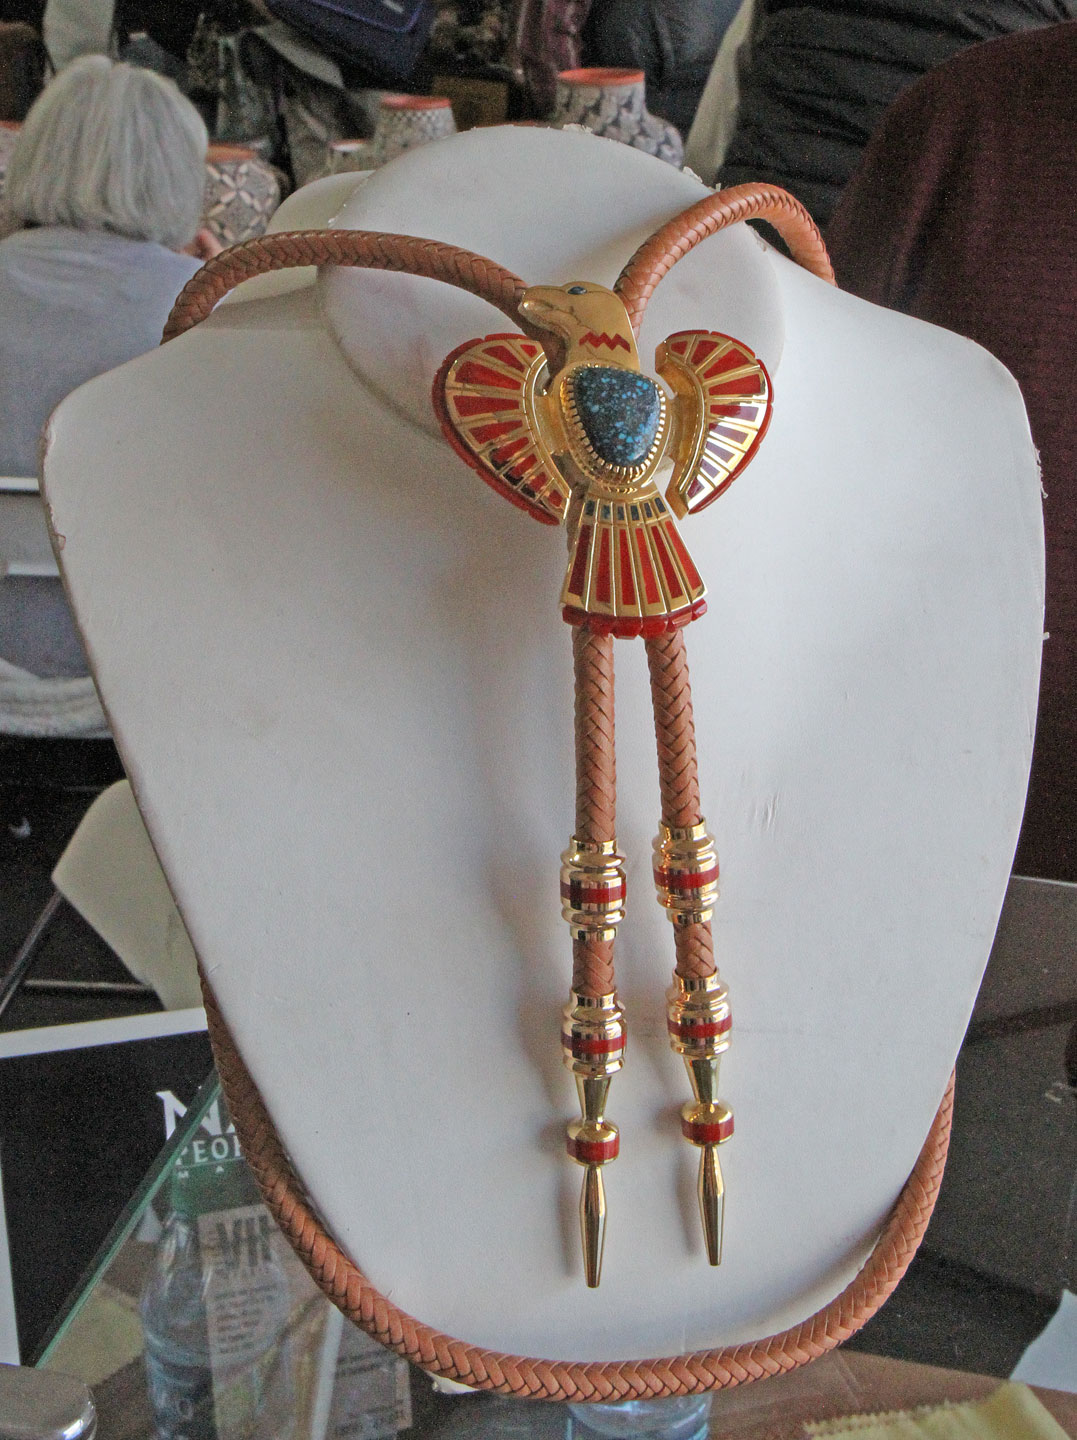 AWARD WINNING BOLO TIE by Vernon Haskie. Haskie's bolo tie won First Place in the Jewelry and Lapidary J category.